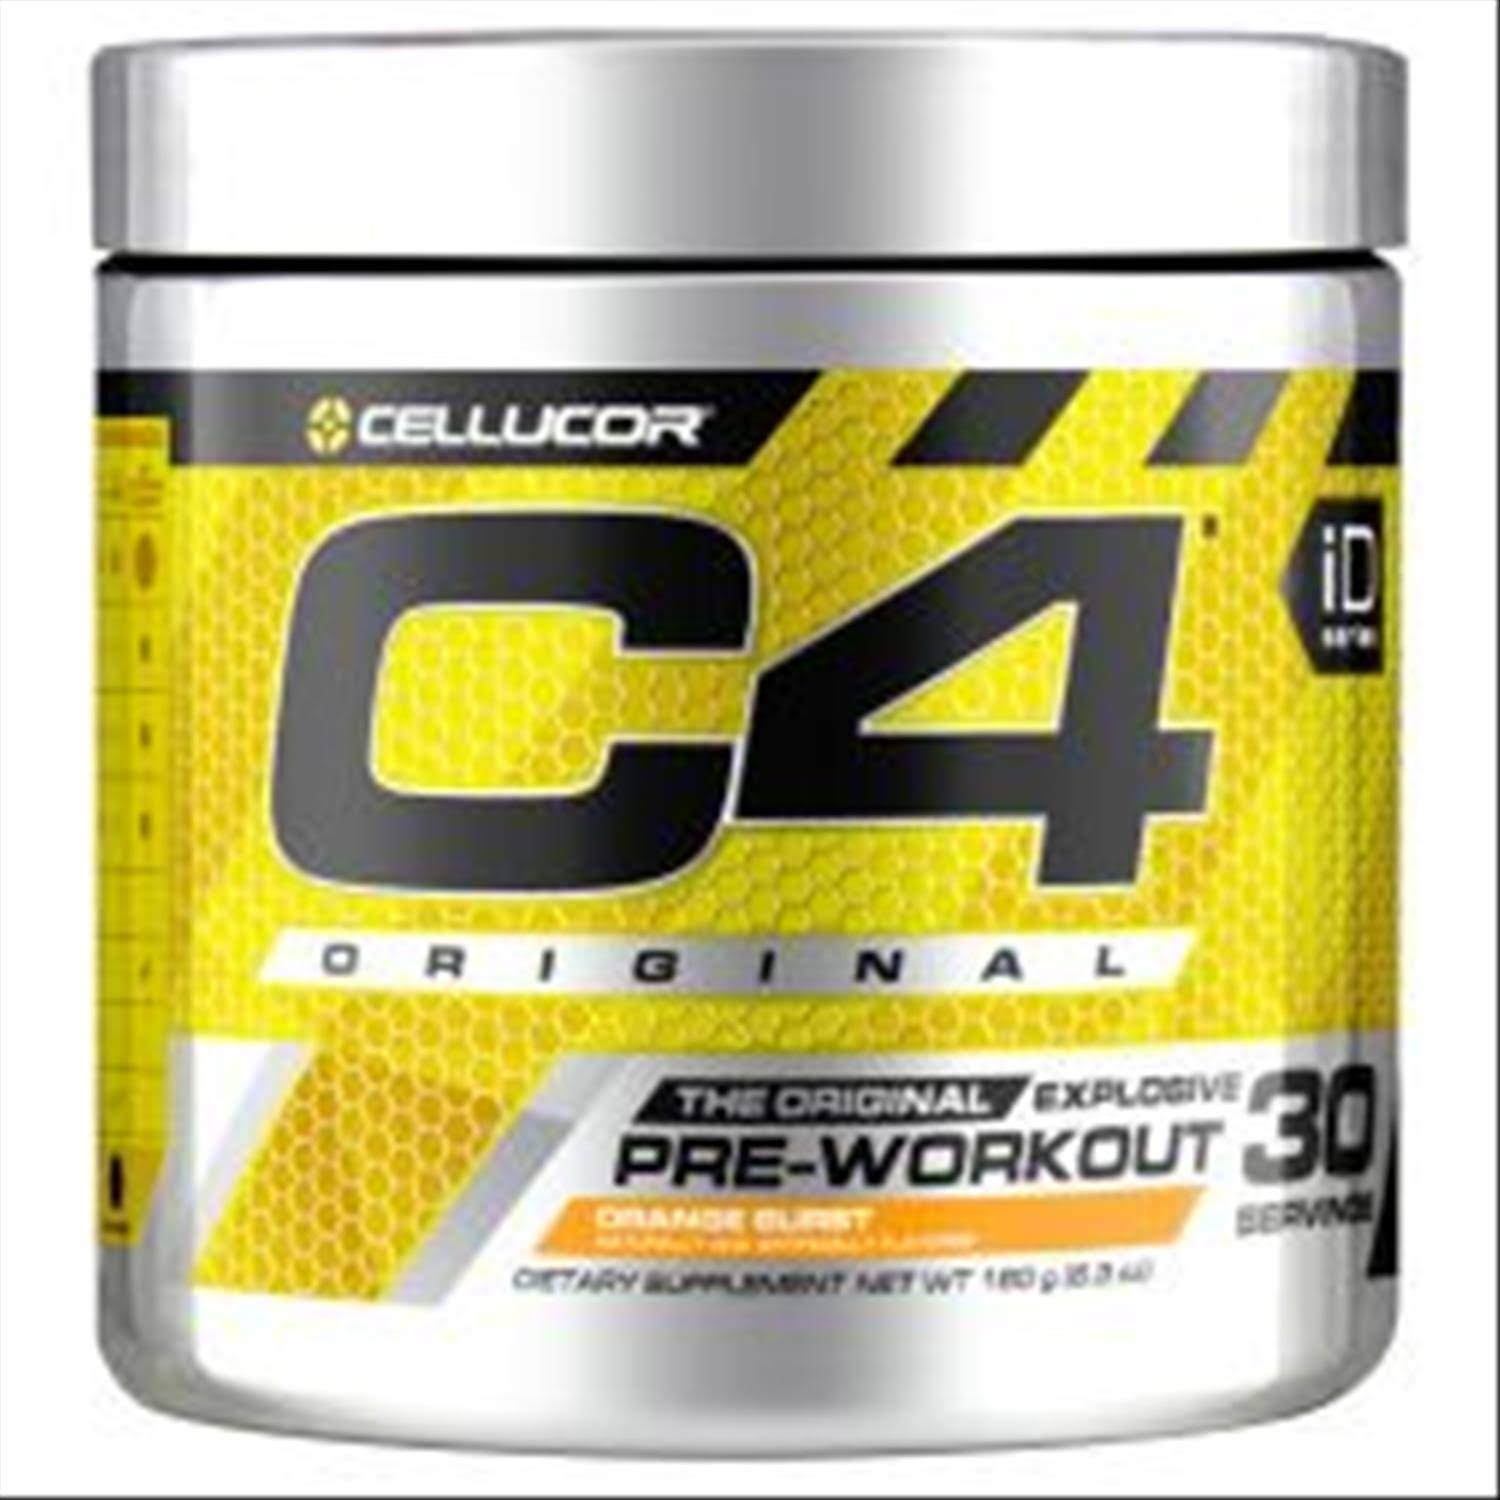 Cellucor C4 Original Explosive Pre-Workout Supplement - Cherry Limeade, 6.3oz, 30 Servings